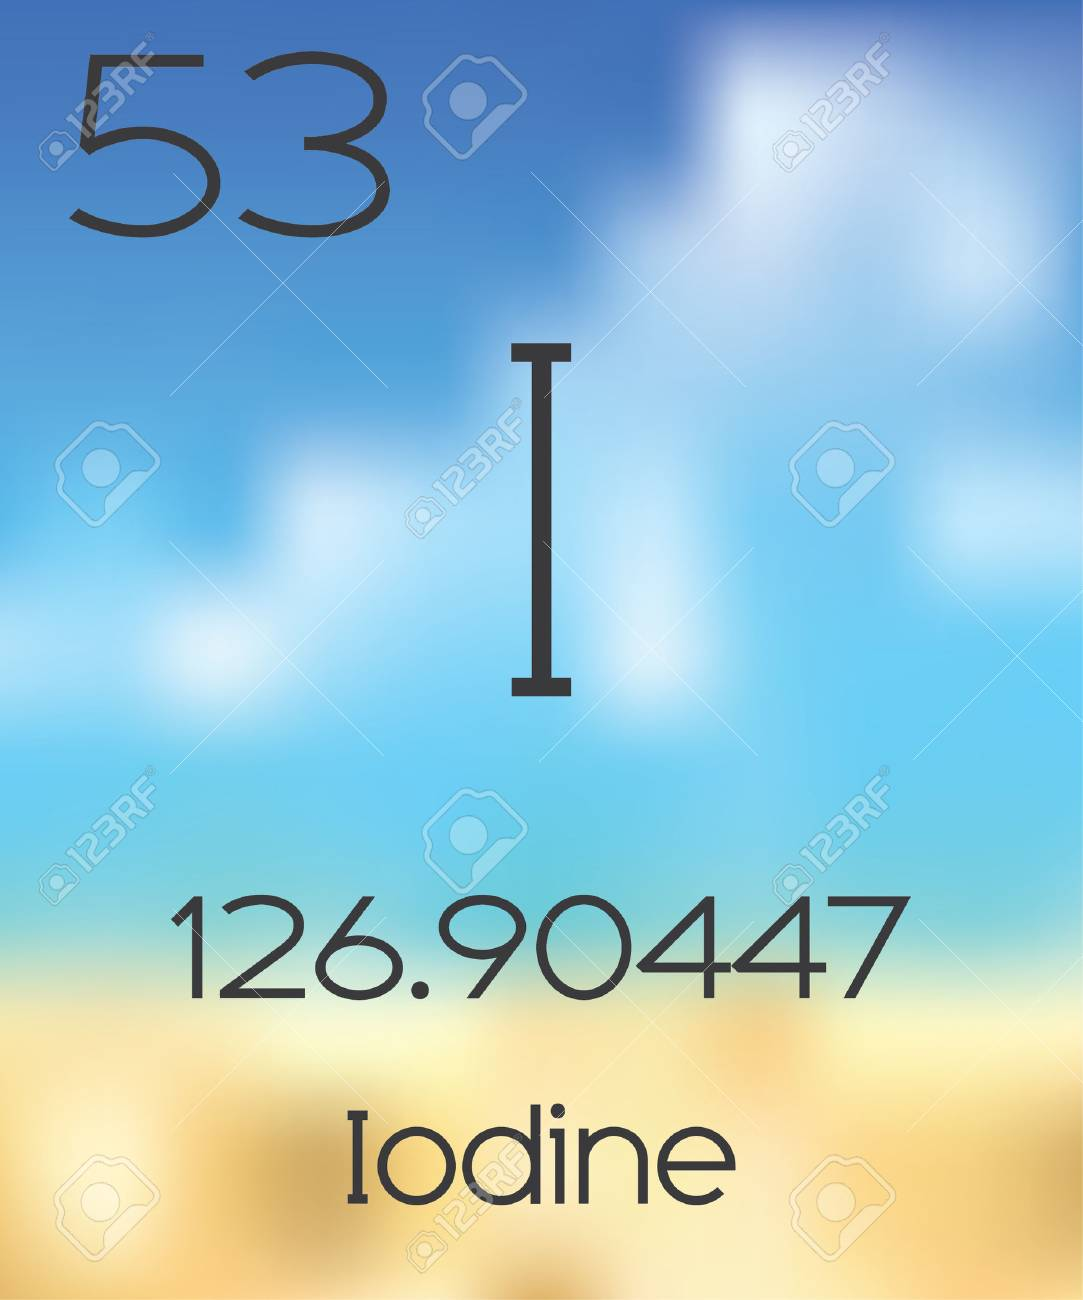 The Periodic Table Of The Elements Iodine Stock Photo Picture And